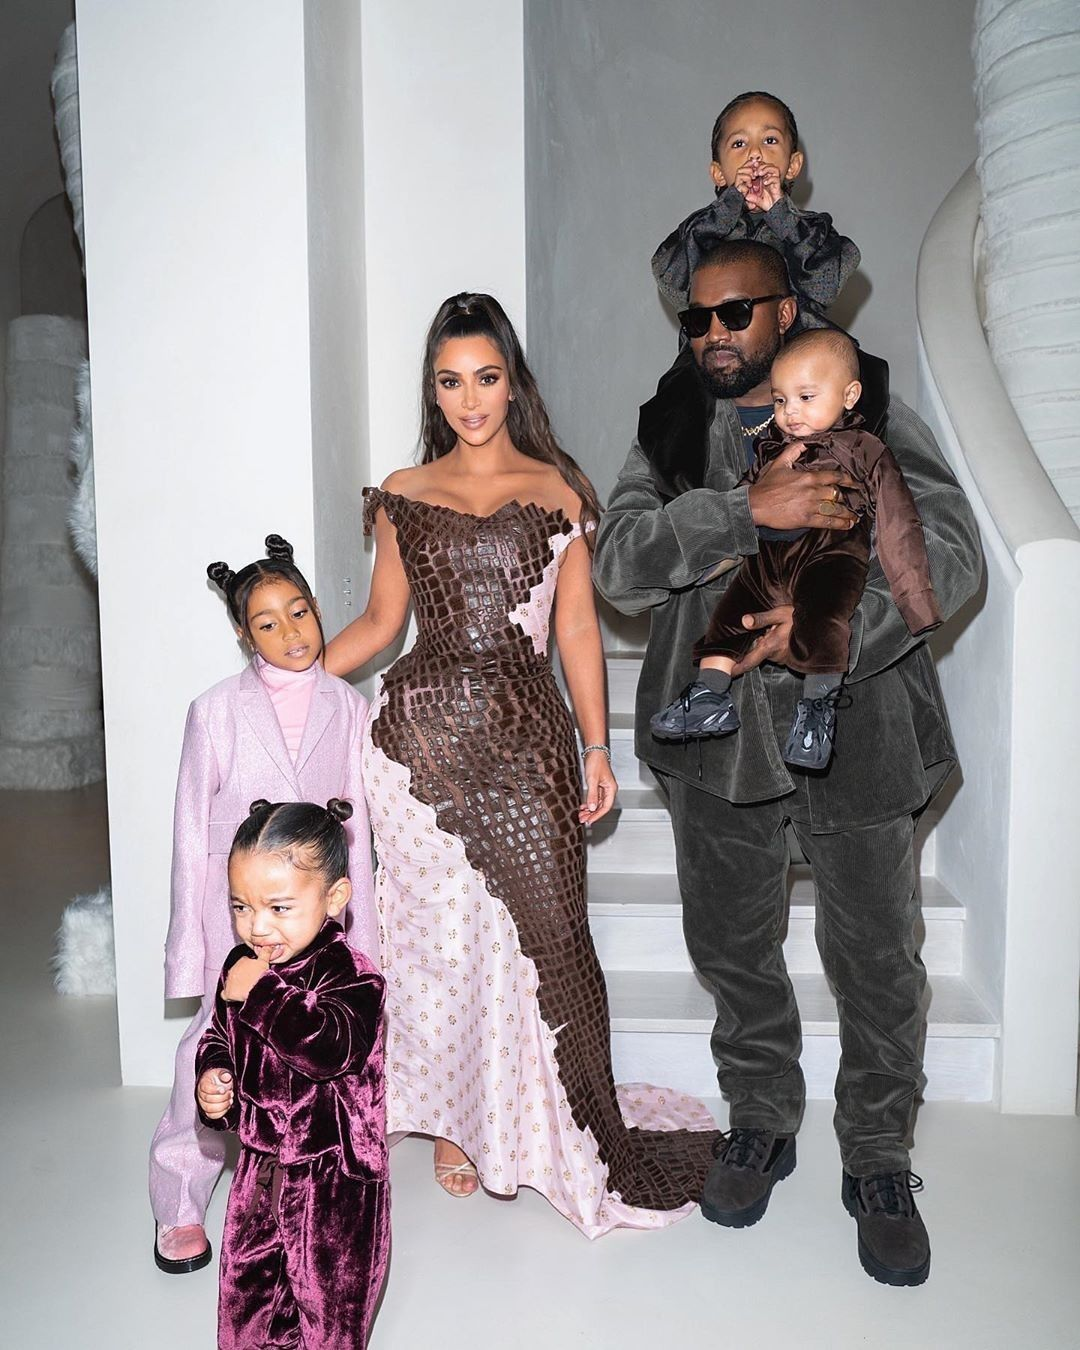 Kanye West and Kim Kardashian with their children: North, Saint, Psalm and Chicago